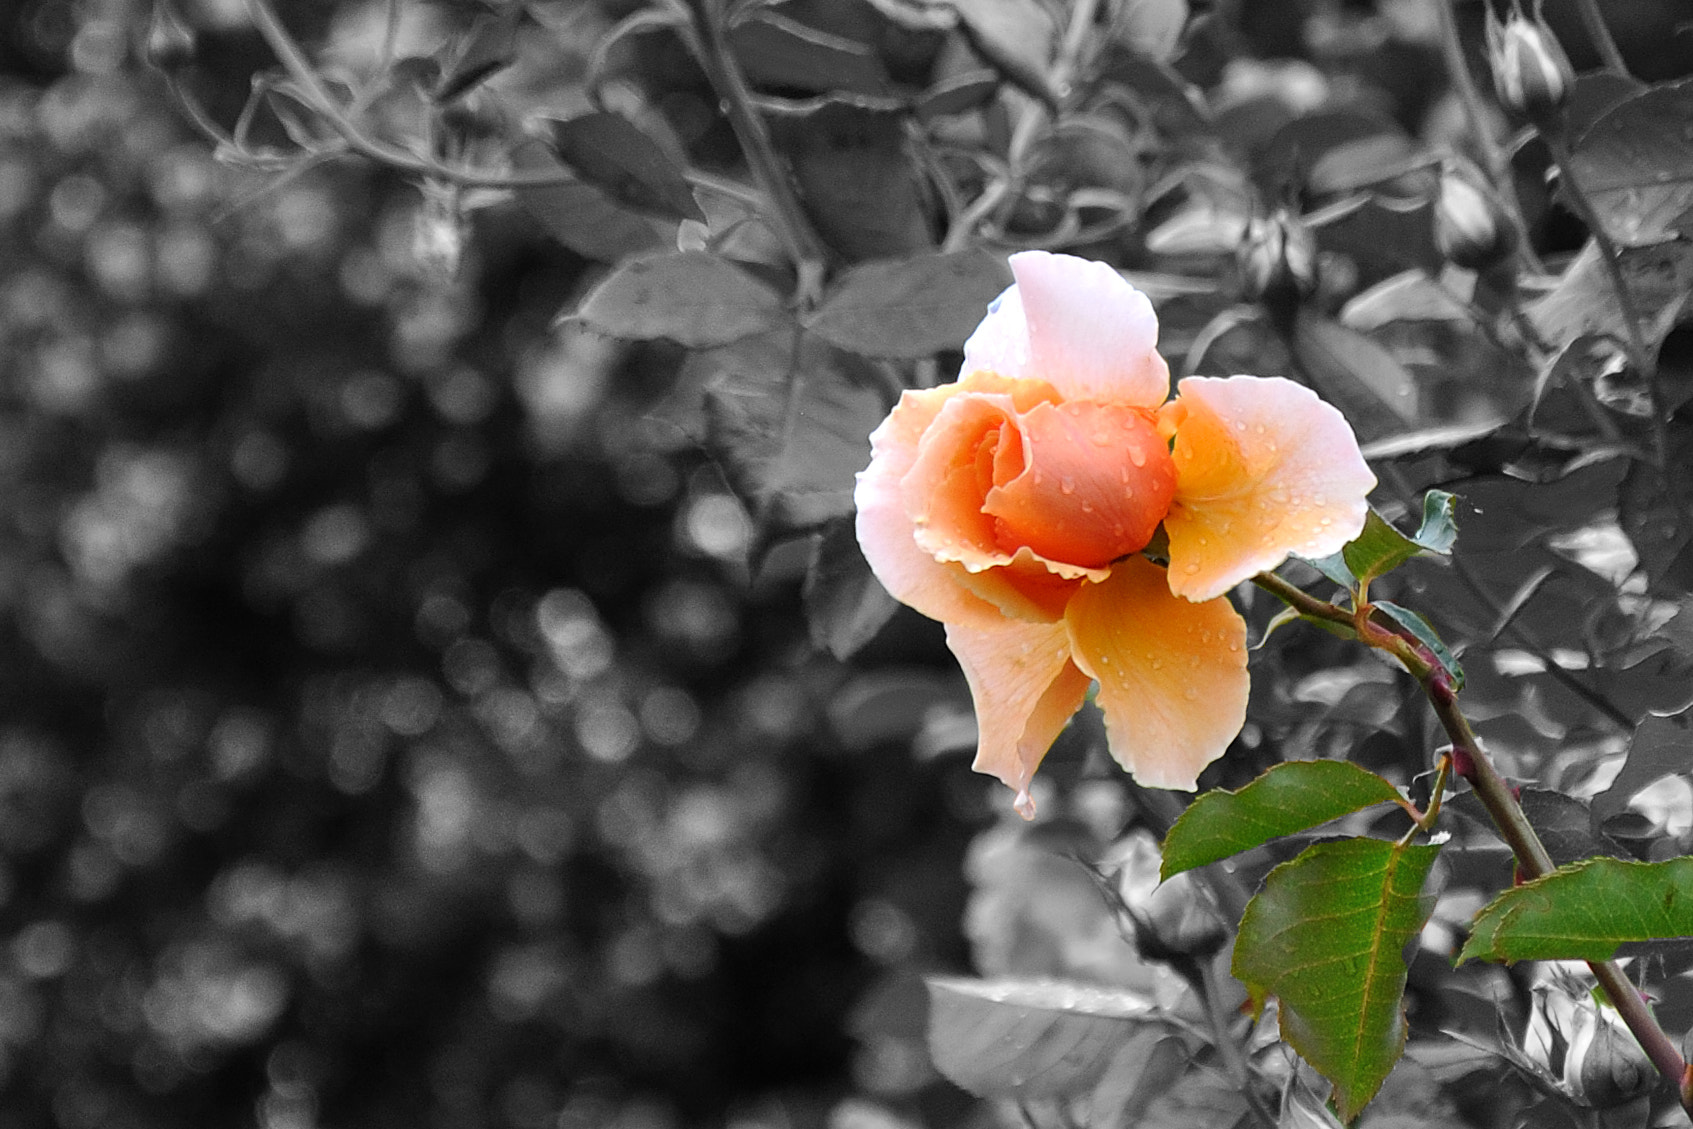 Photograph Orange rose by Mauro Ortiz on 500px